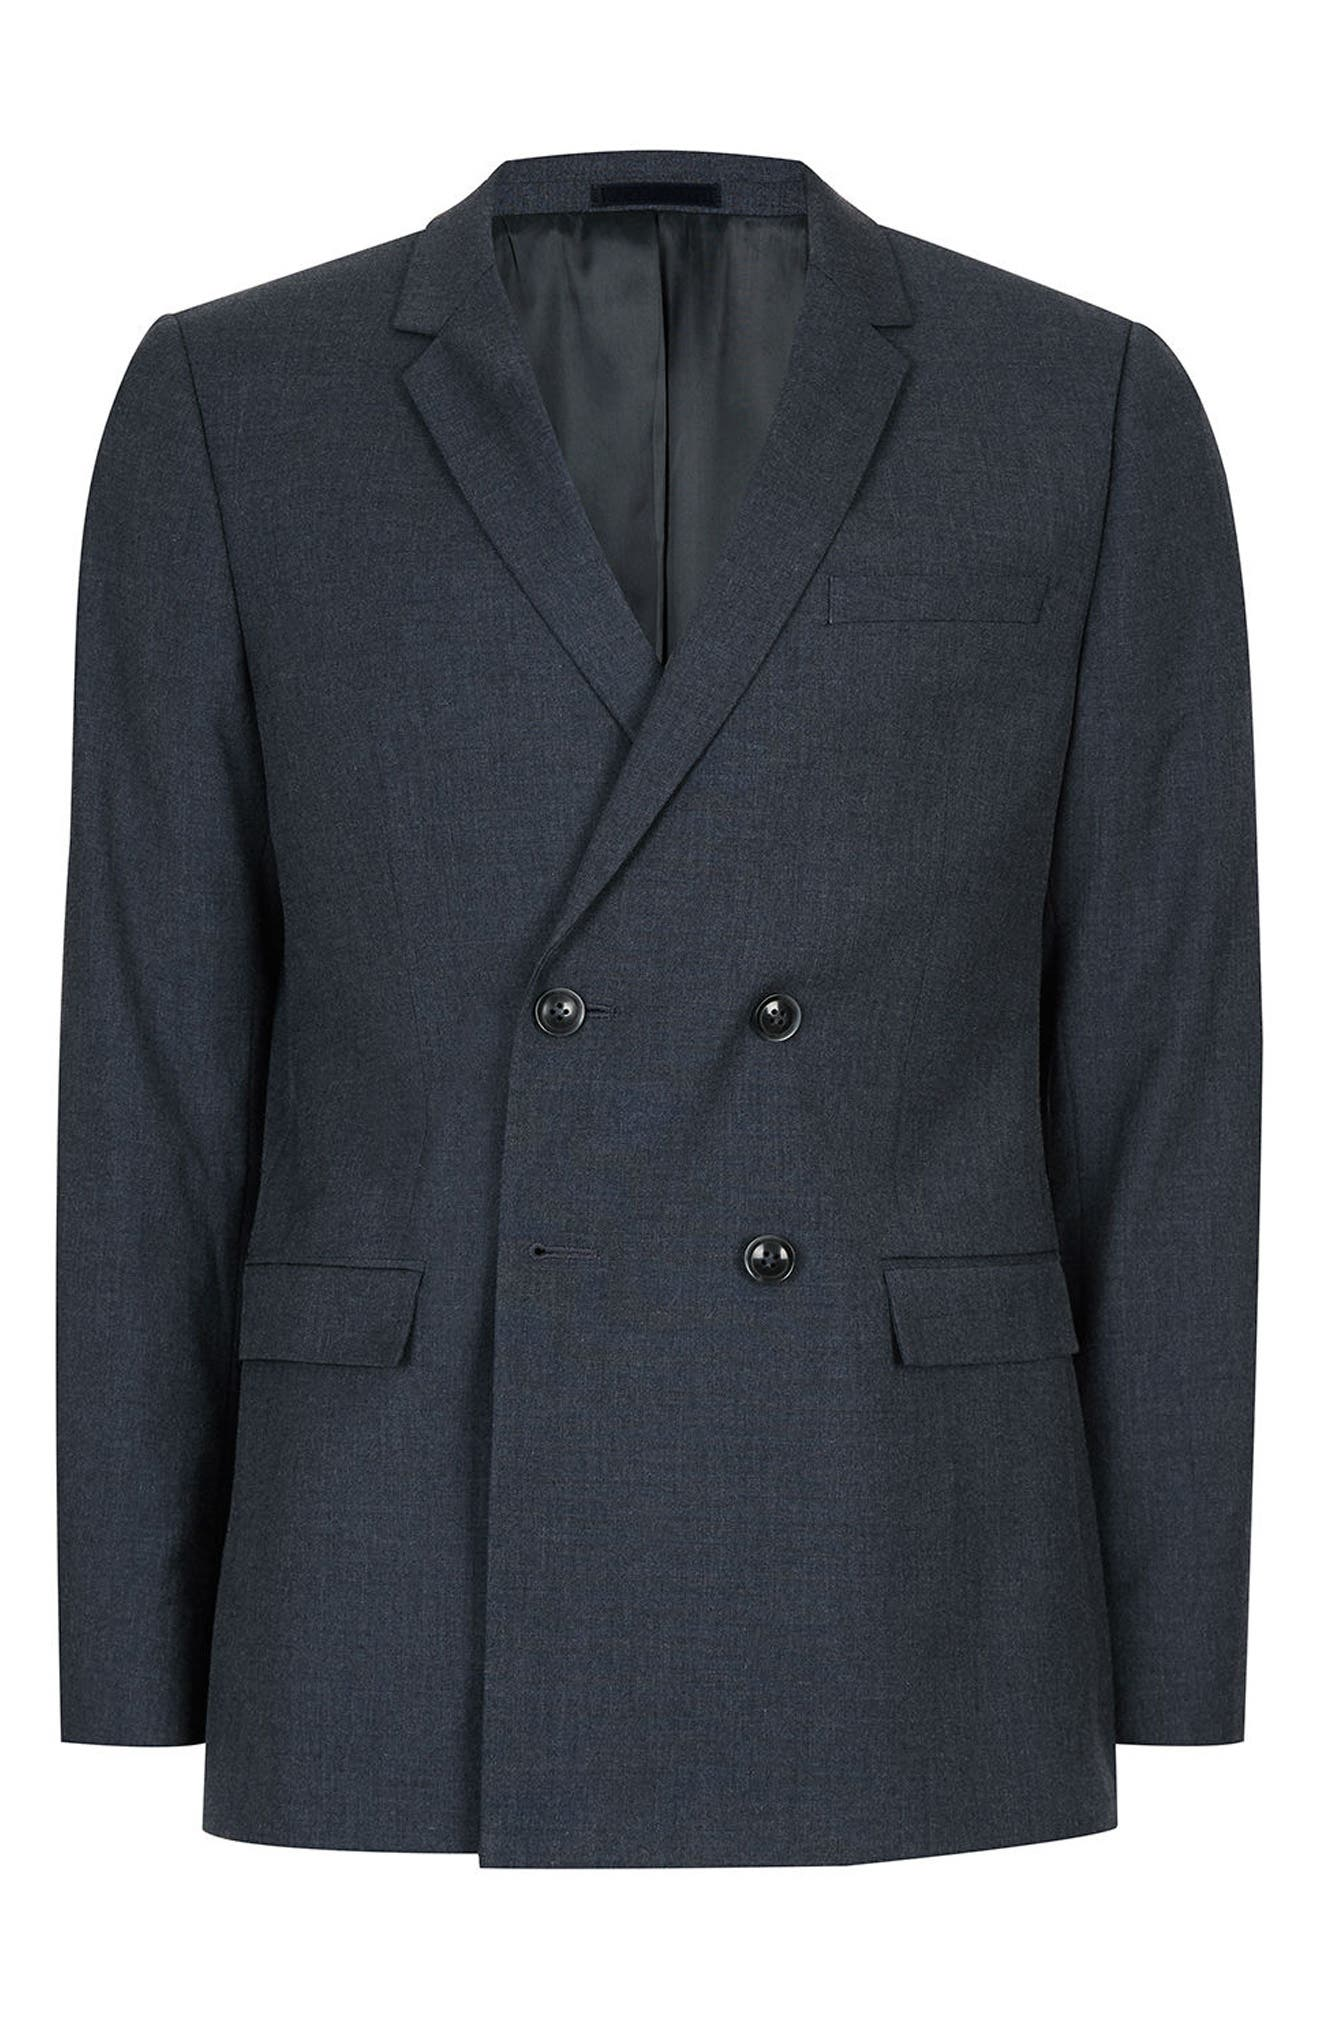 Skinny Fit Double Breasted Suit Jacket,                             Alternate thumbnail 4, color,                             410